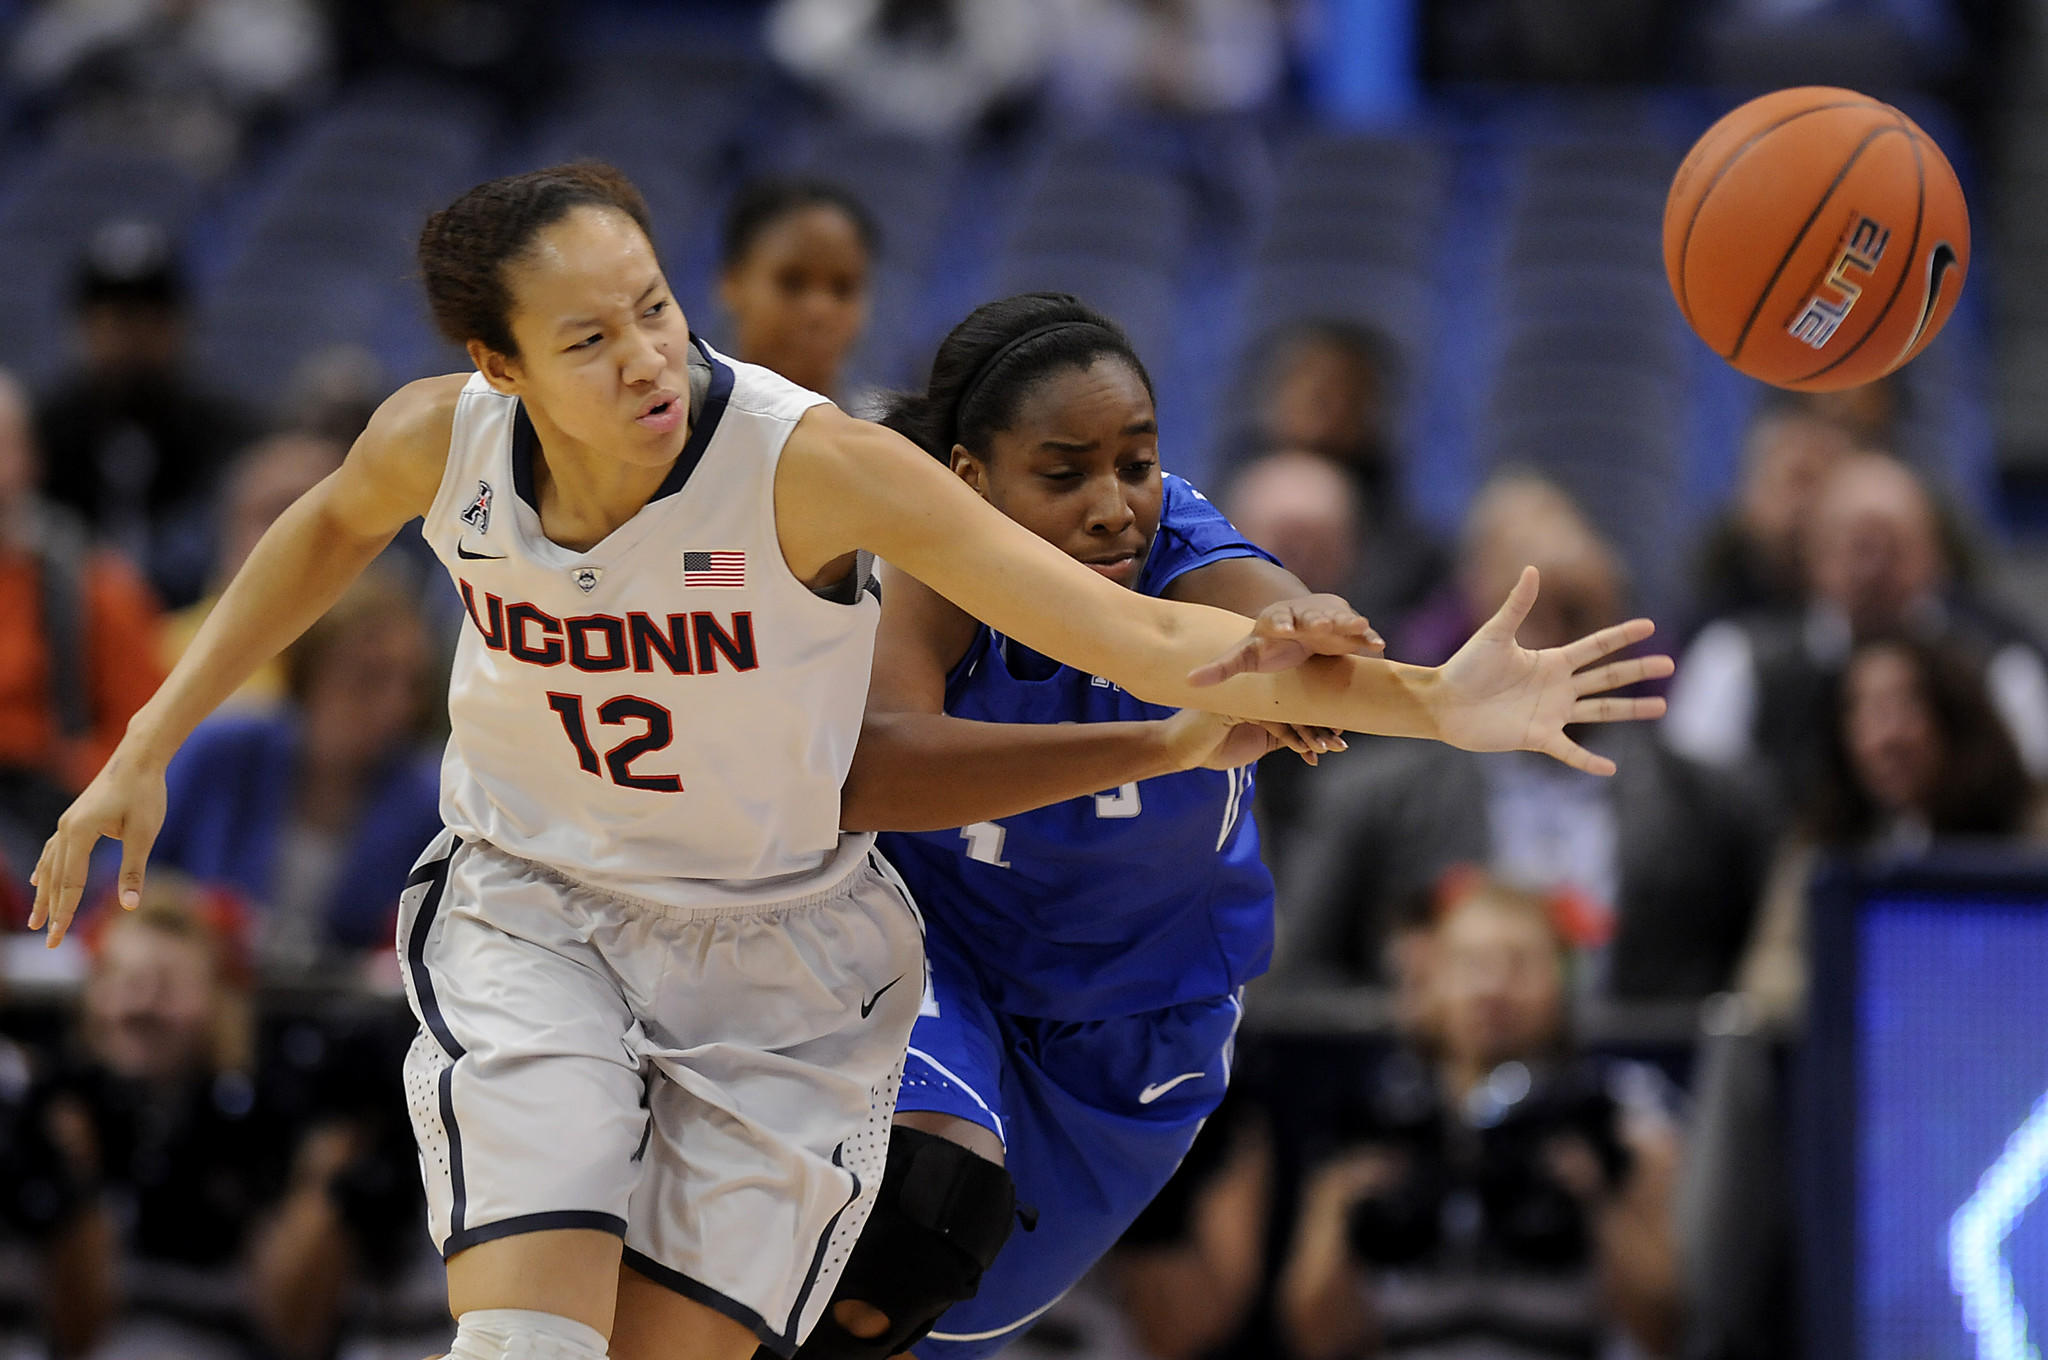 Hartford, CT 01/22/14 Connecticut Huskies guard Saniya Chong (12) and Memphis Lady Tigers guard Breigha Wilder-Cochran (1) battle for a loose ball during the first half at the XL Center in Hartford Wednesday night. UConn leads 39-23 at the half. Photo by JOHN WOIKE | woike@courant.com hc-uconn-women-memphis-0123